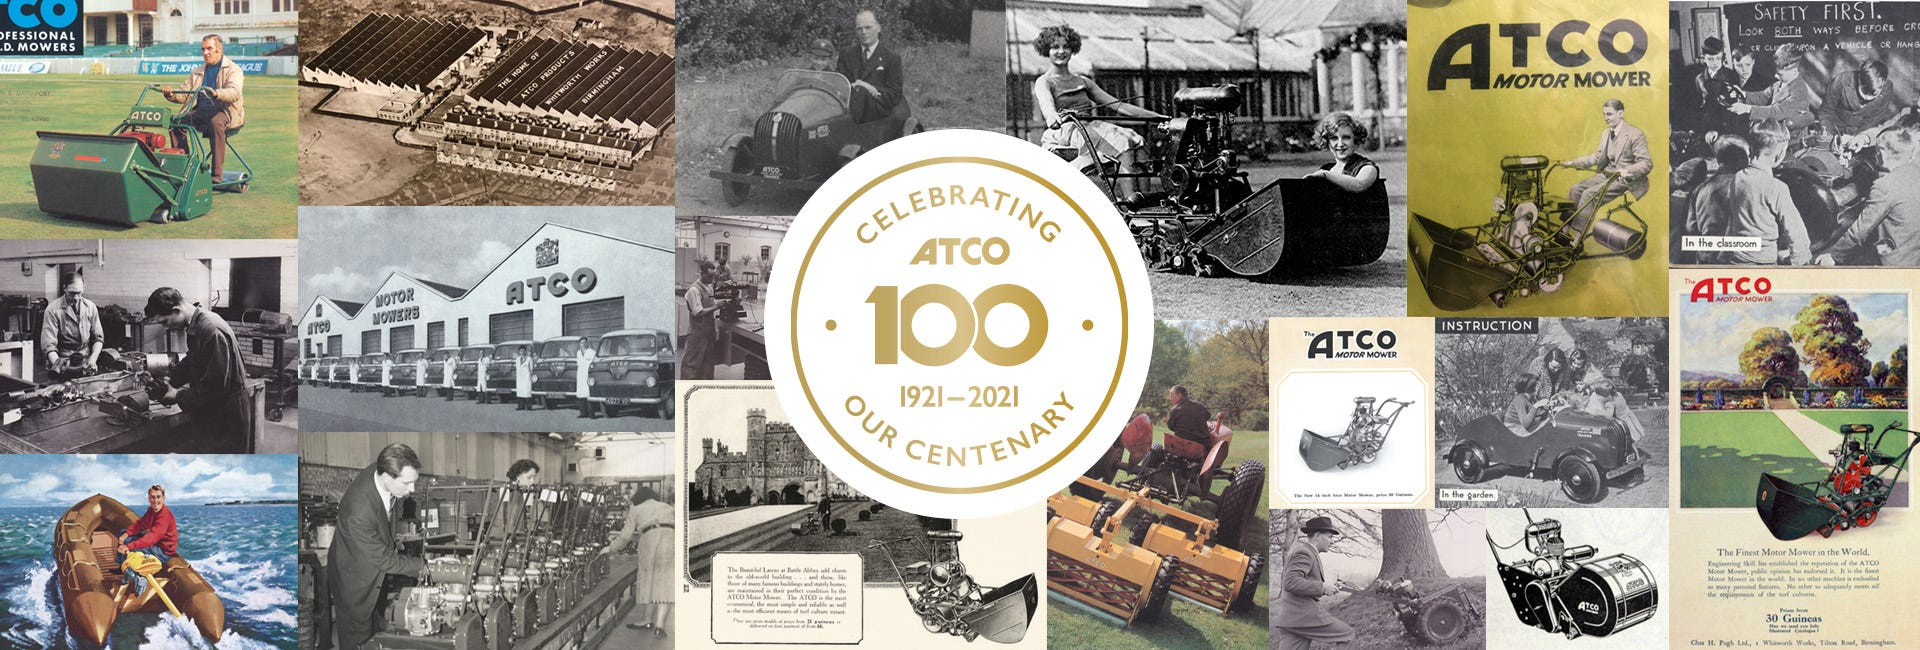 about-atco